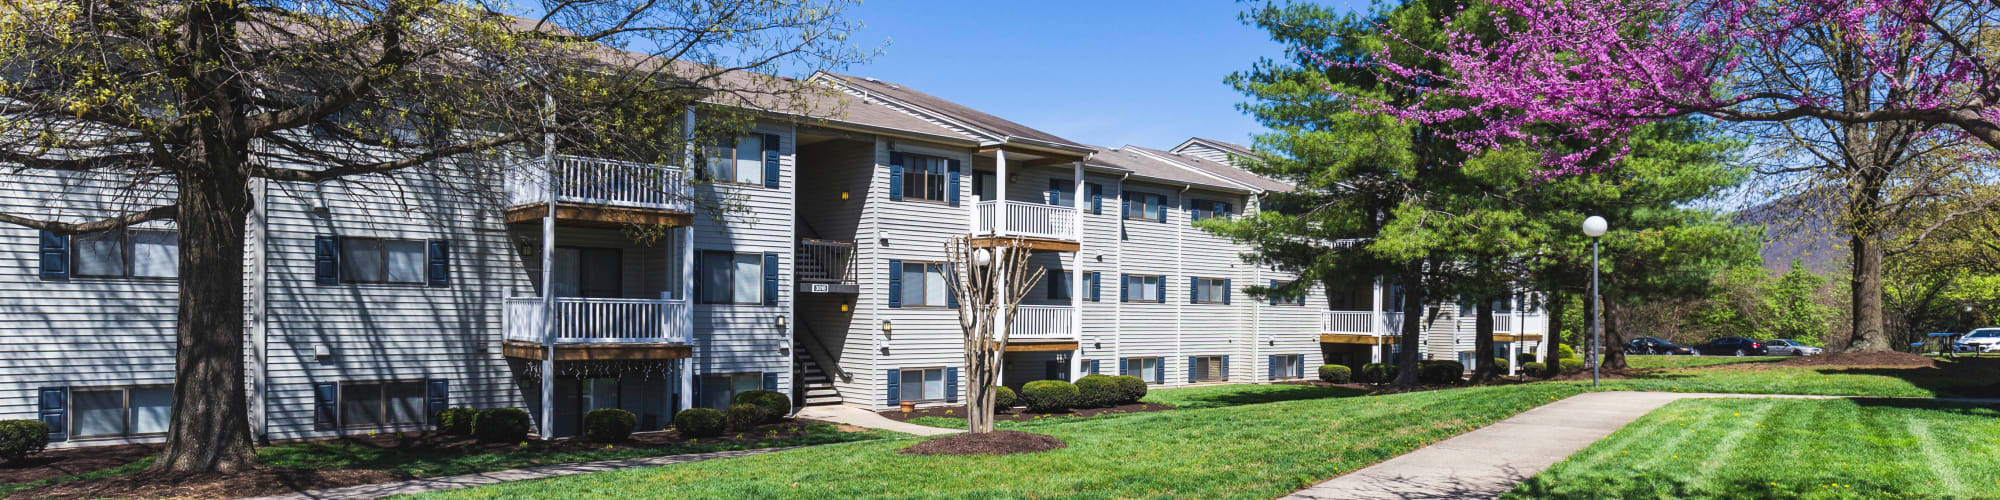 Schedule a tour of Hickory Woods Apartments in Roanoke, Virginia